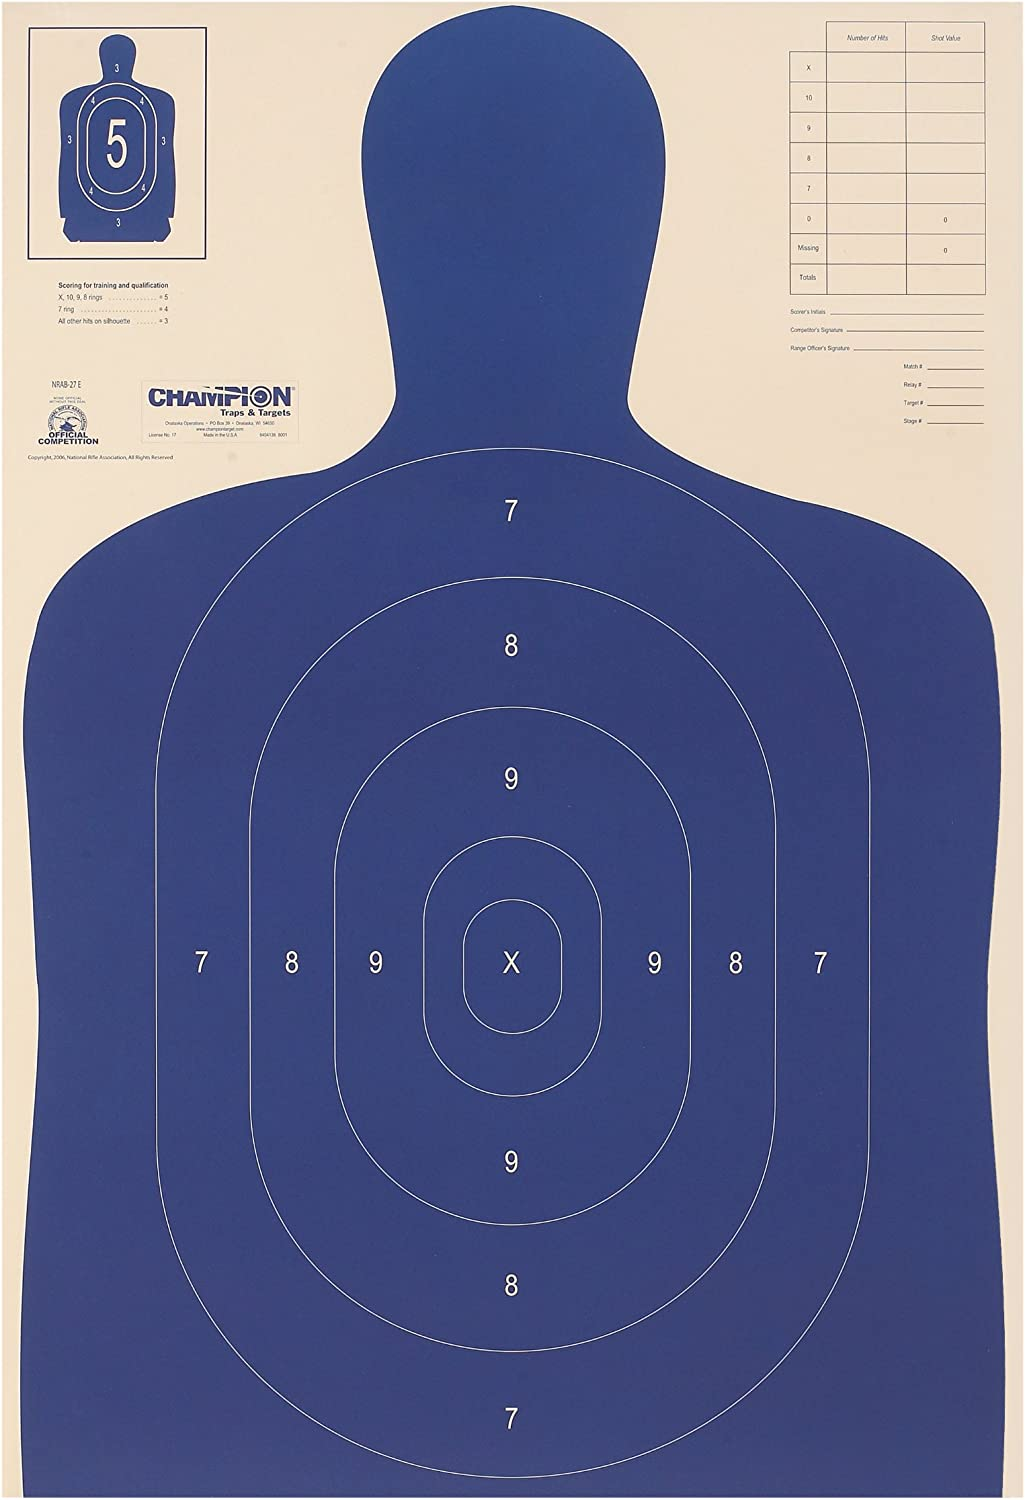 Champion Police Targets 40730 Police Silhouette B-27 E